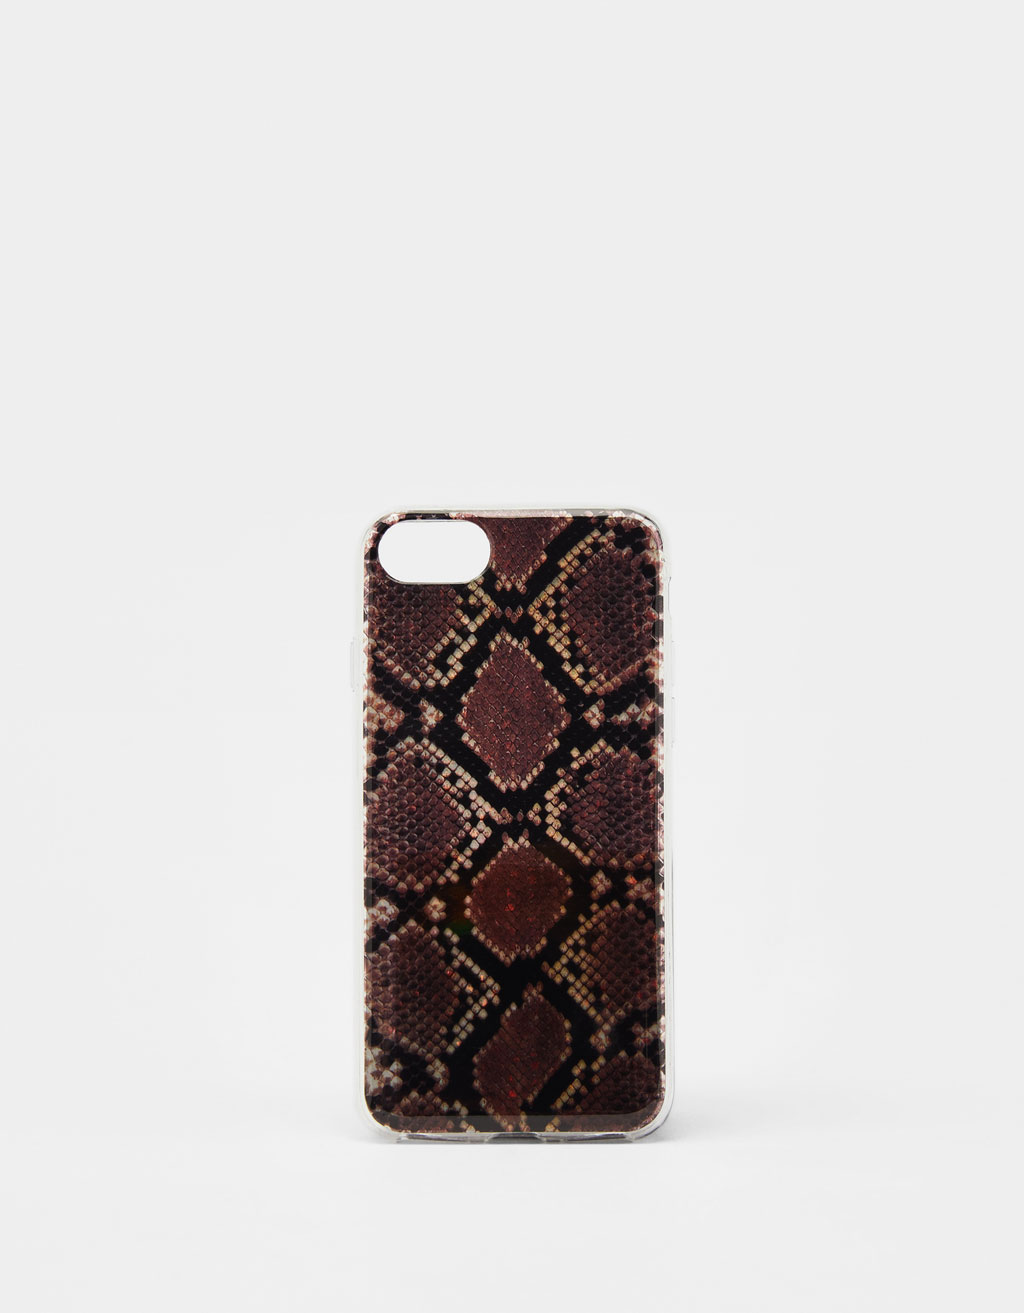 Cover iPhone 6 / 6s / 7 / 8 stampa serpente